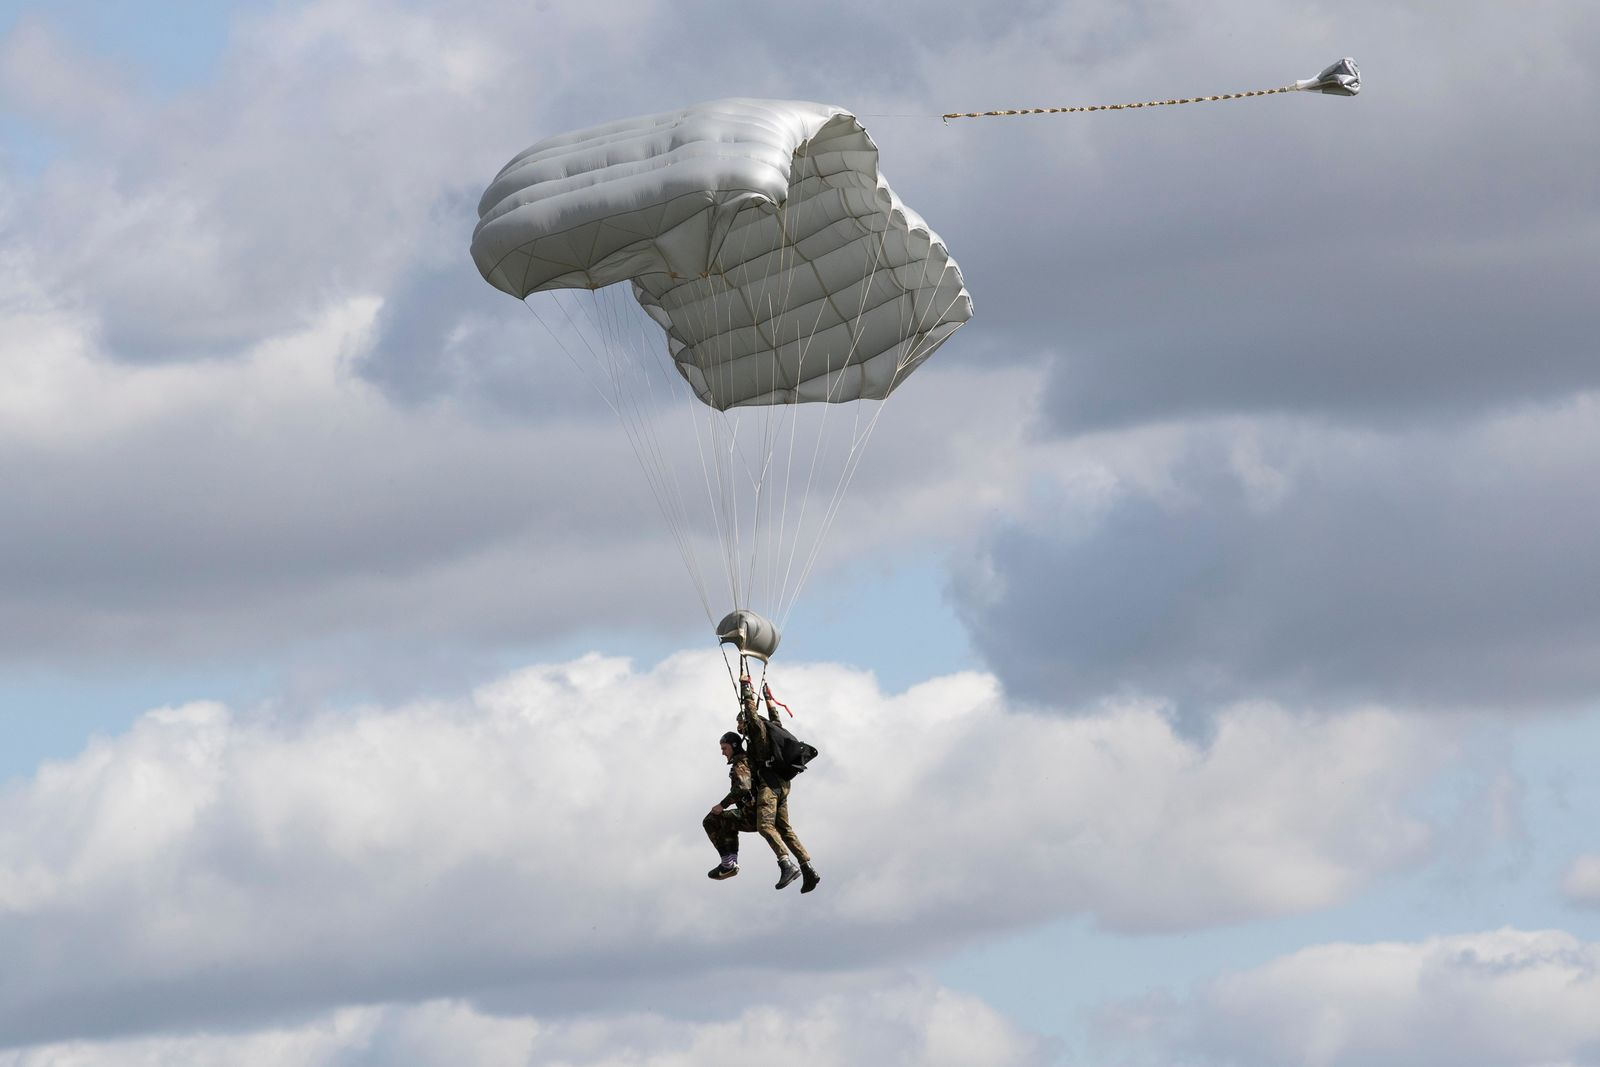 Tom Rice, a 98-year-old American WWII veteran, front left, approaches the landing zone in a tandem parachute jump near Groesbeek, Netherlands, Thursday, Sept. 19, 2019, as part of commemorations marking the 75th anniversary of Operation Market Garden. Rice jumped with the U.S. Army's 101st Airborne Division in Normandy, landing safely despite catching himself on the exit and a bullet striking his parachute. (AP Photo/Peter Dejong)